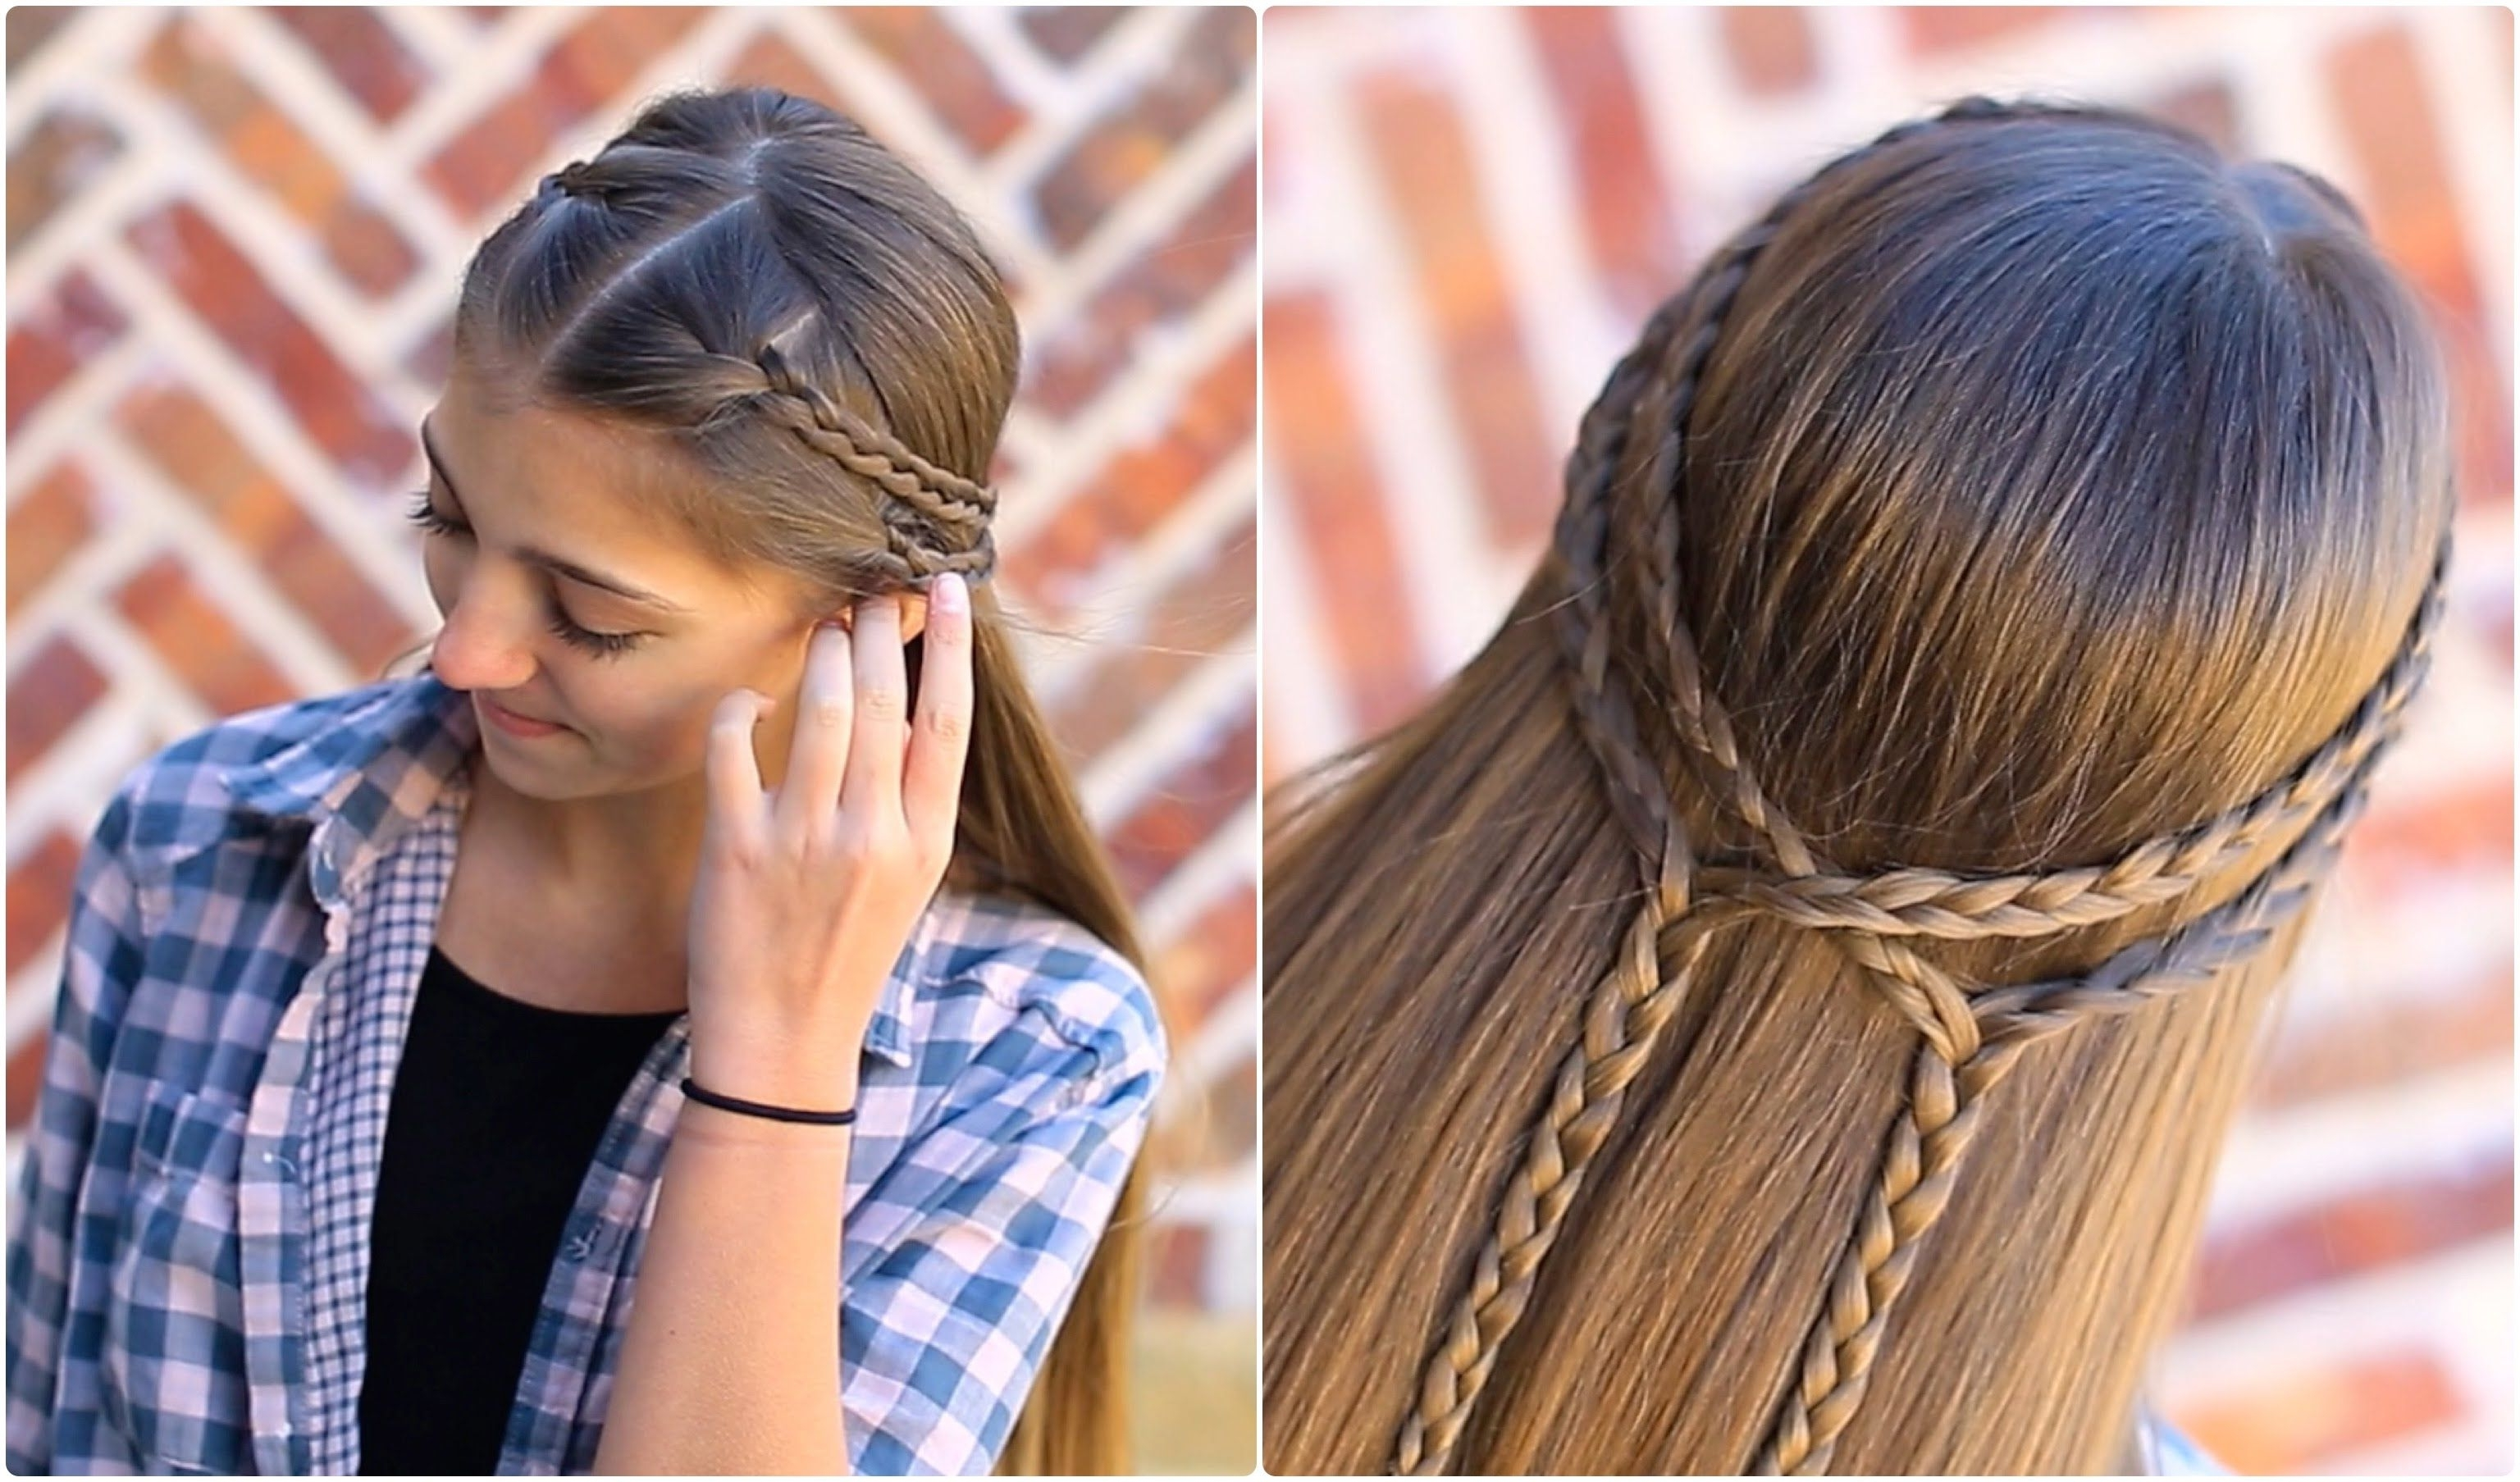 Cute Girls Hairstyles With Regard To Fashionable Double Braided Hairstyles (View 6 of 20)